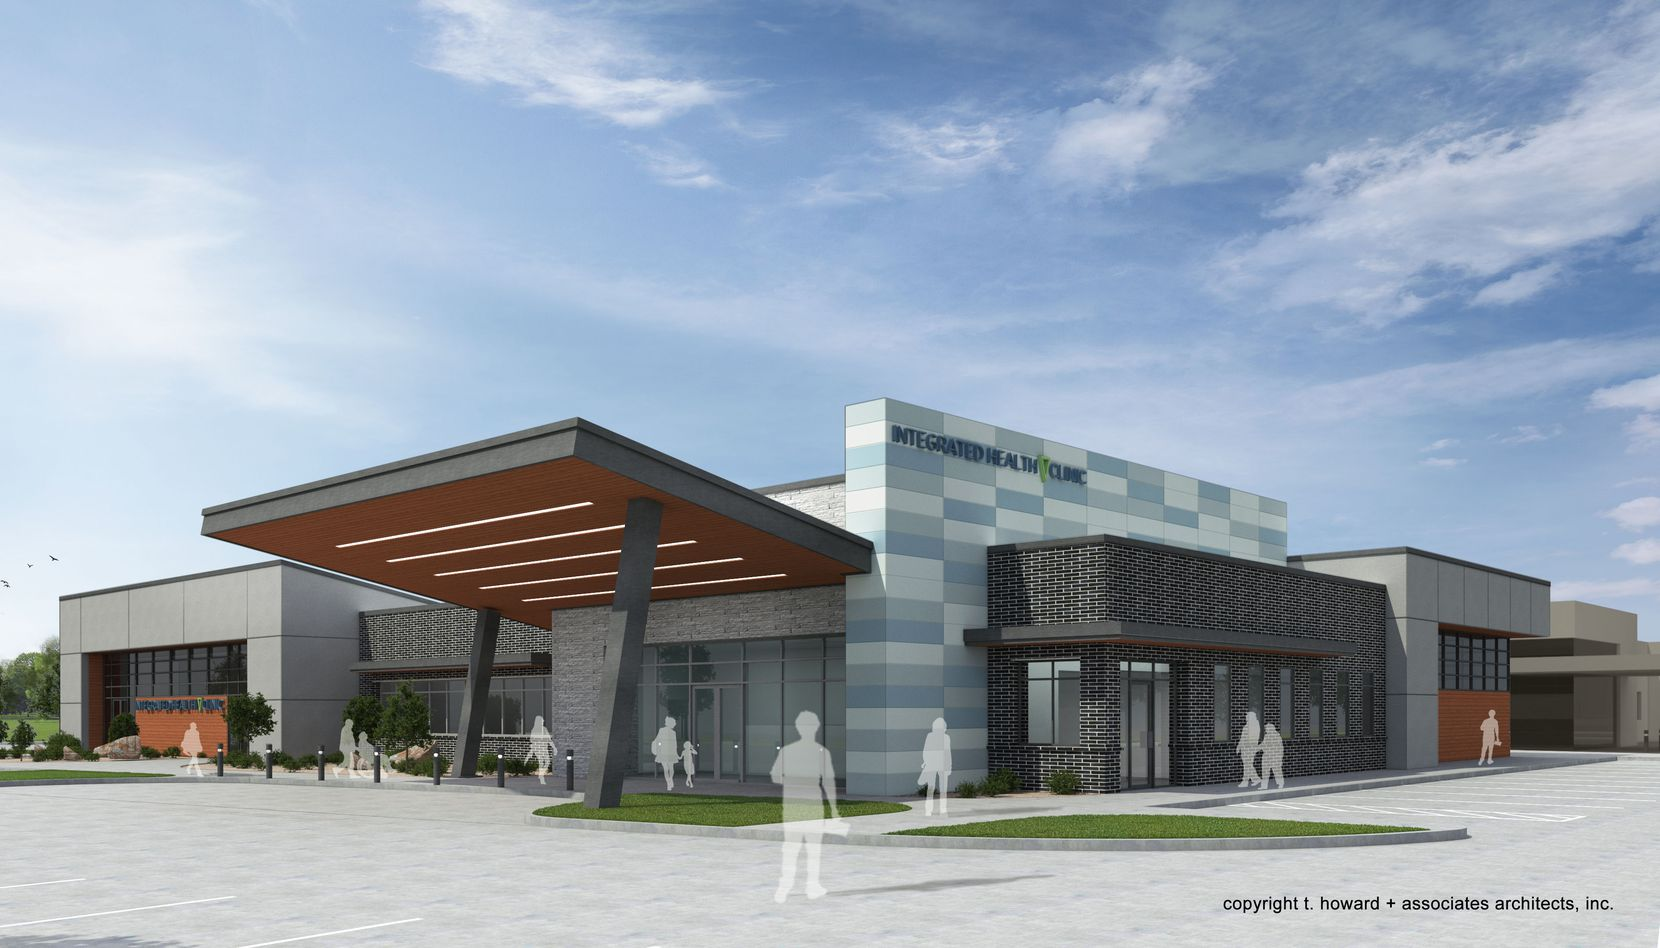 T. Howard+Associates' rendering of a new health clinic for southern Dallas.